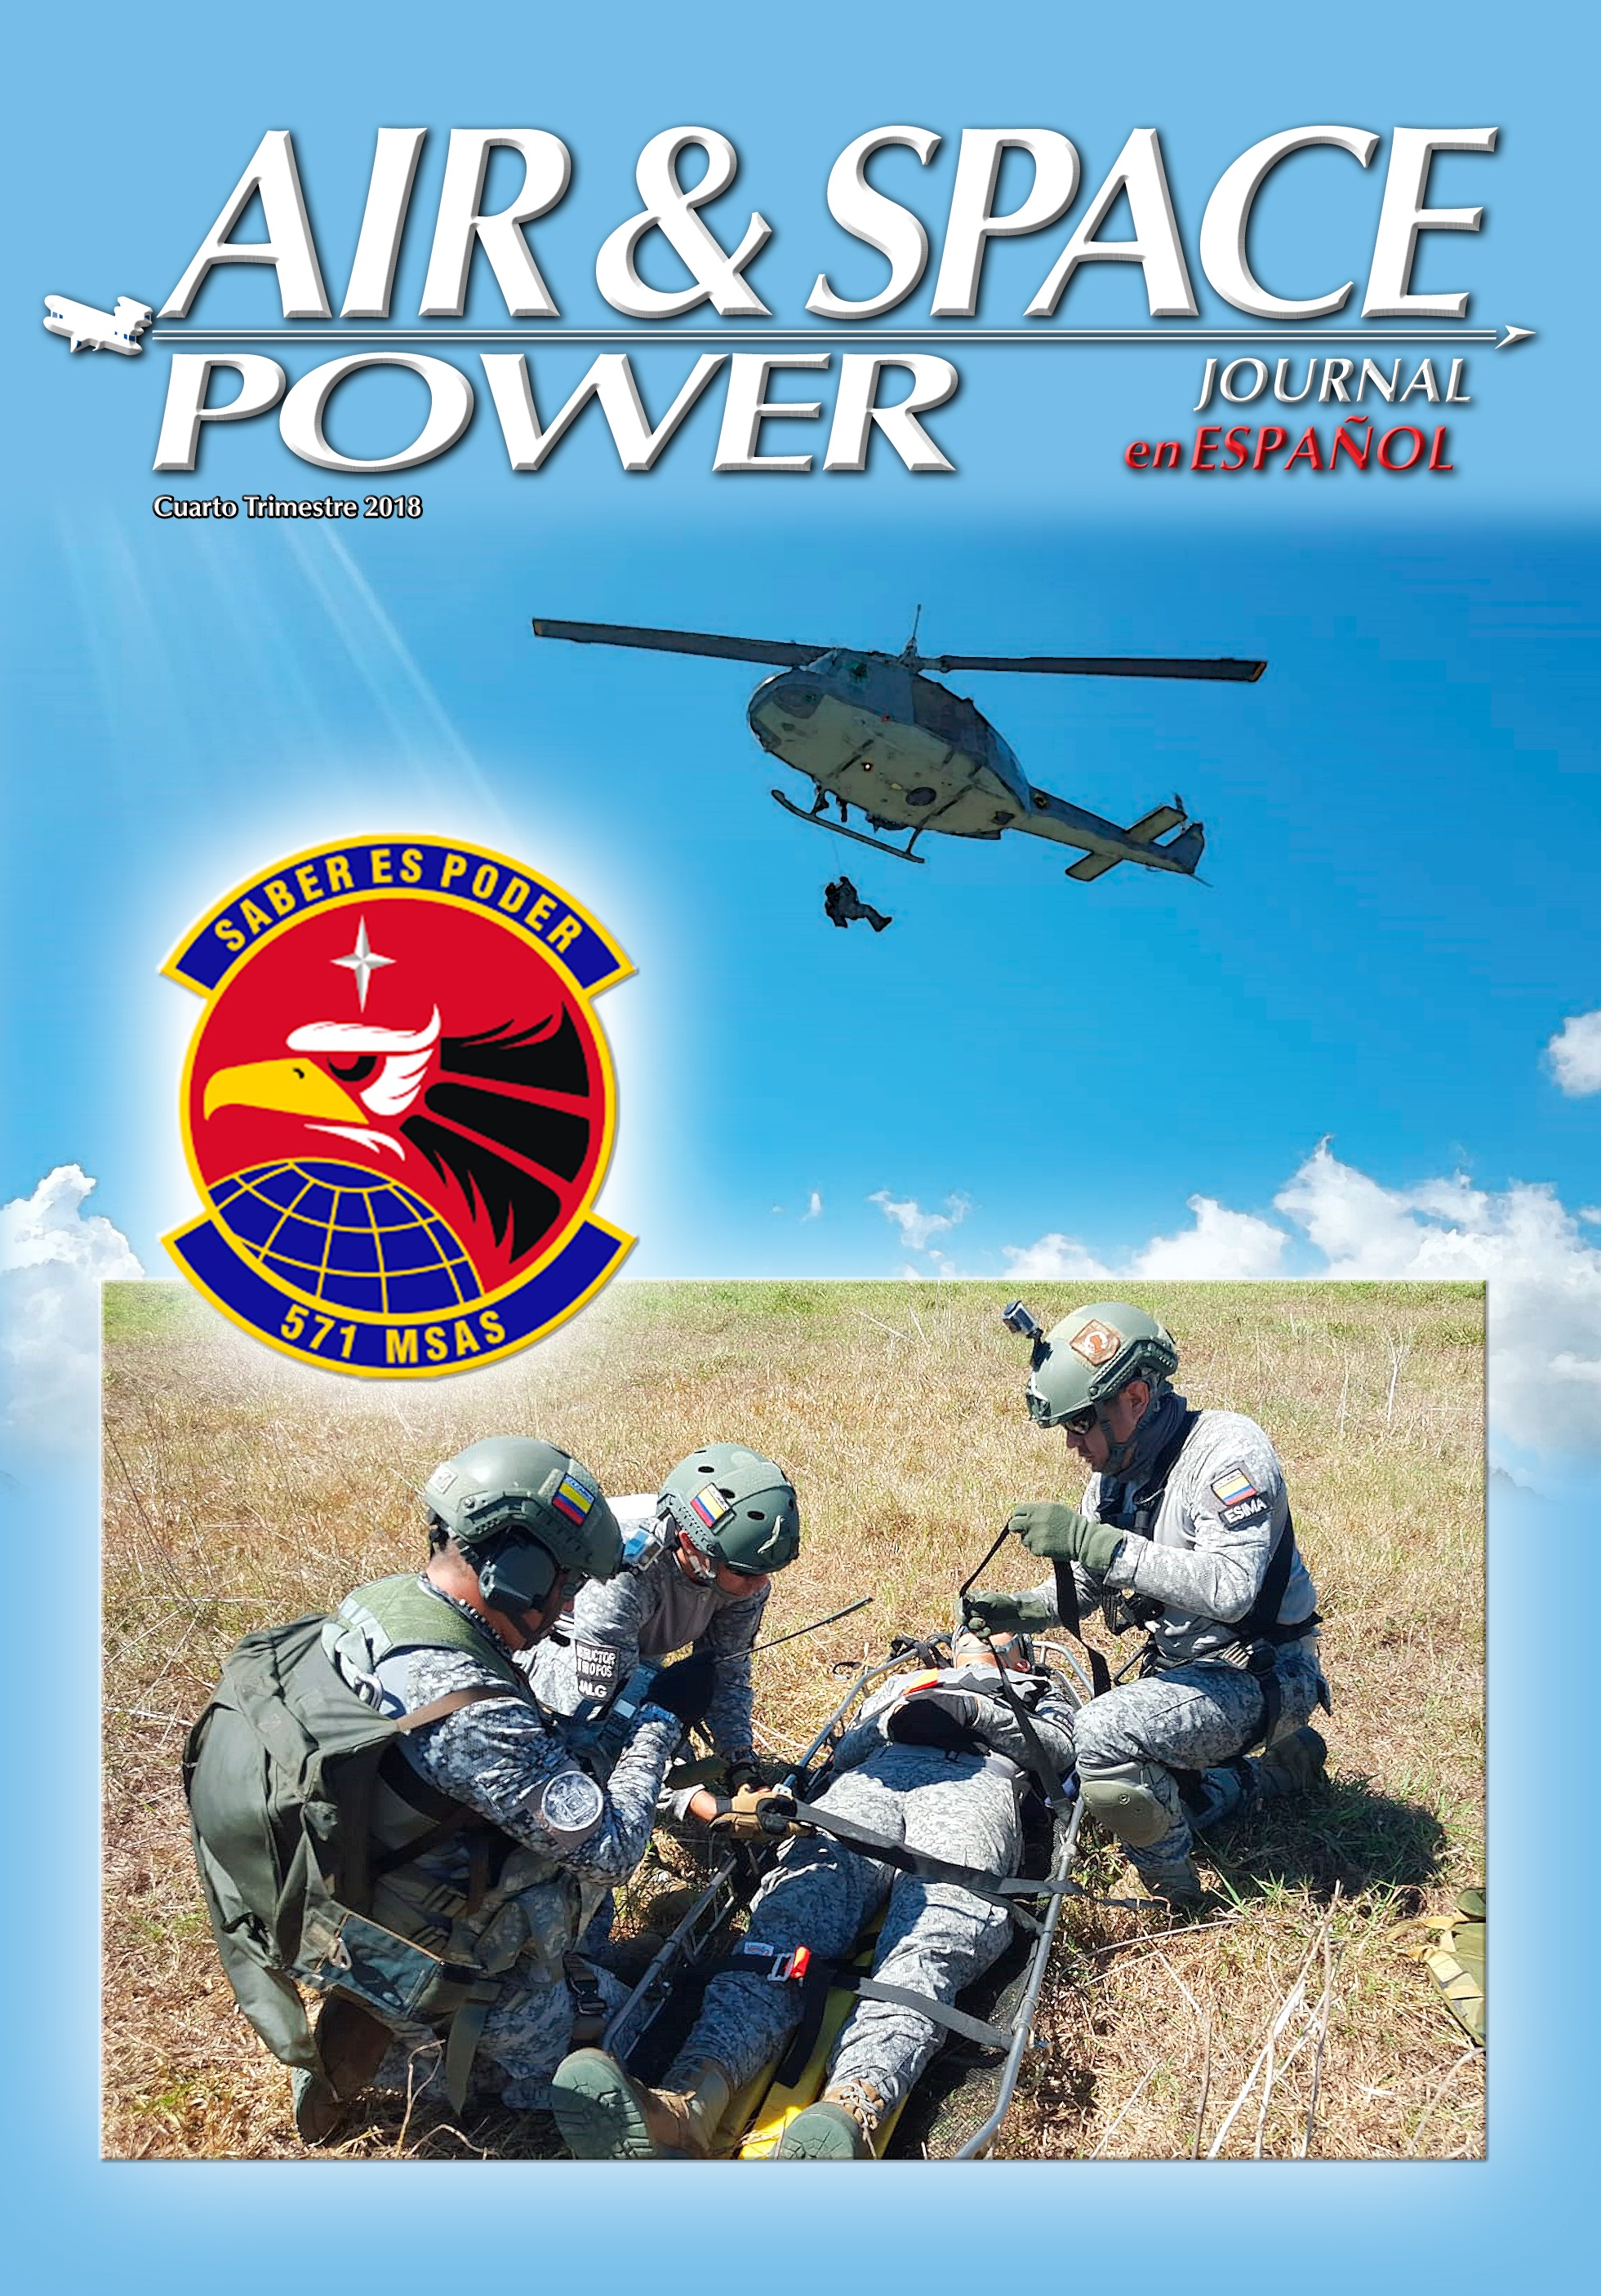 Air & Space Power Journal En Español